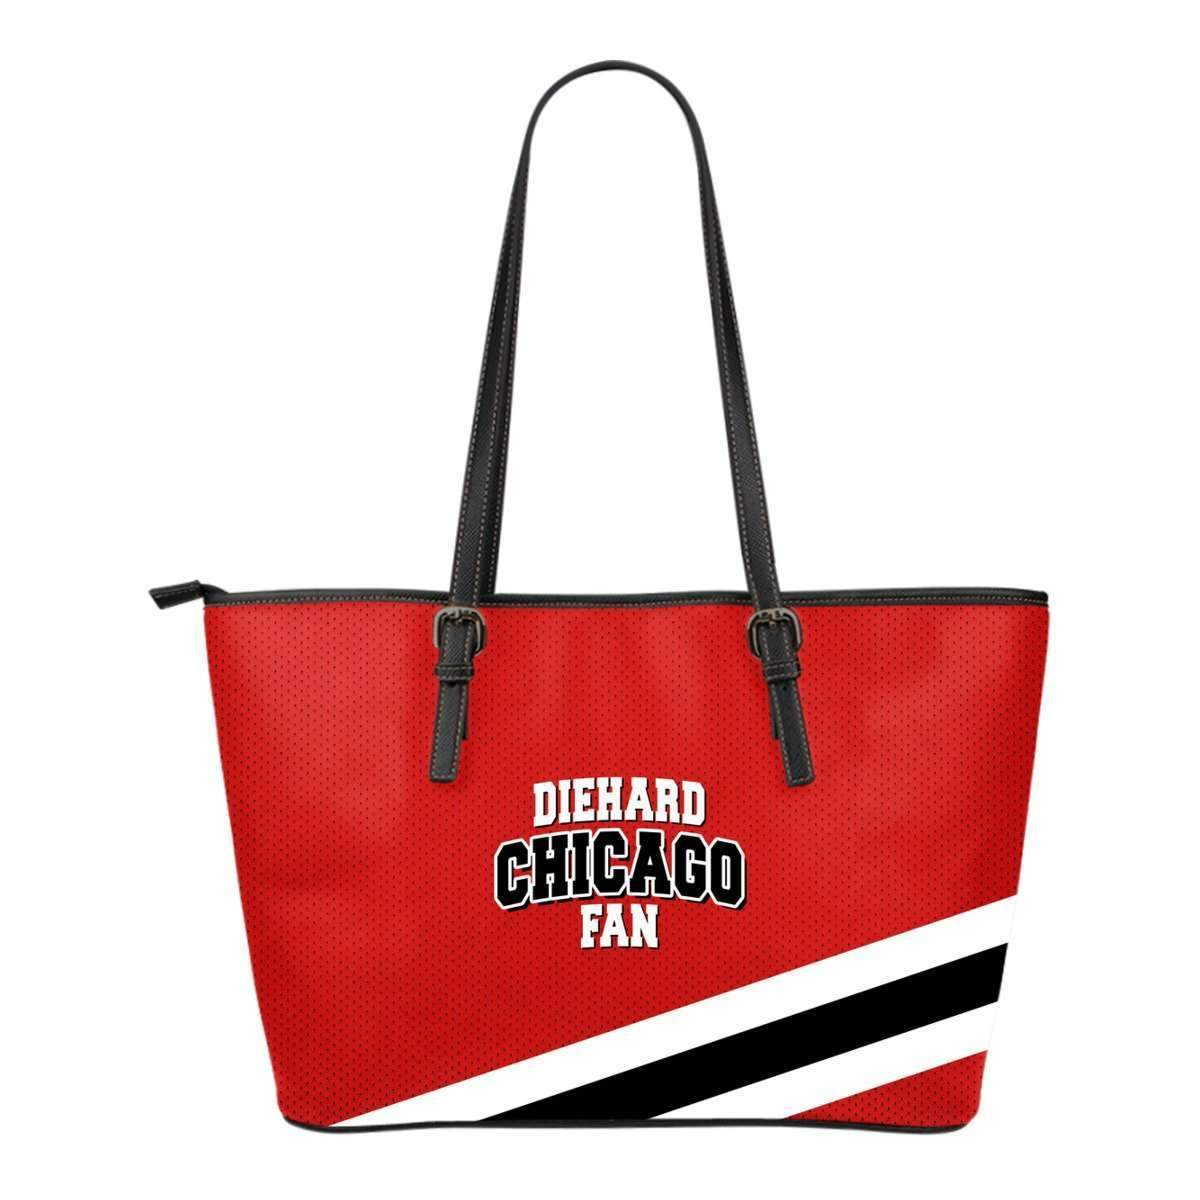 DieHard Chicago Fan Small Leather Tote Bag-Shopeholic